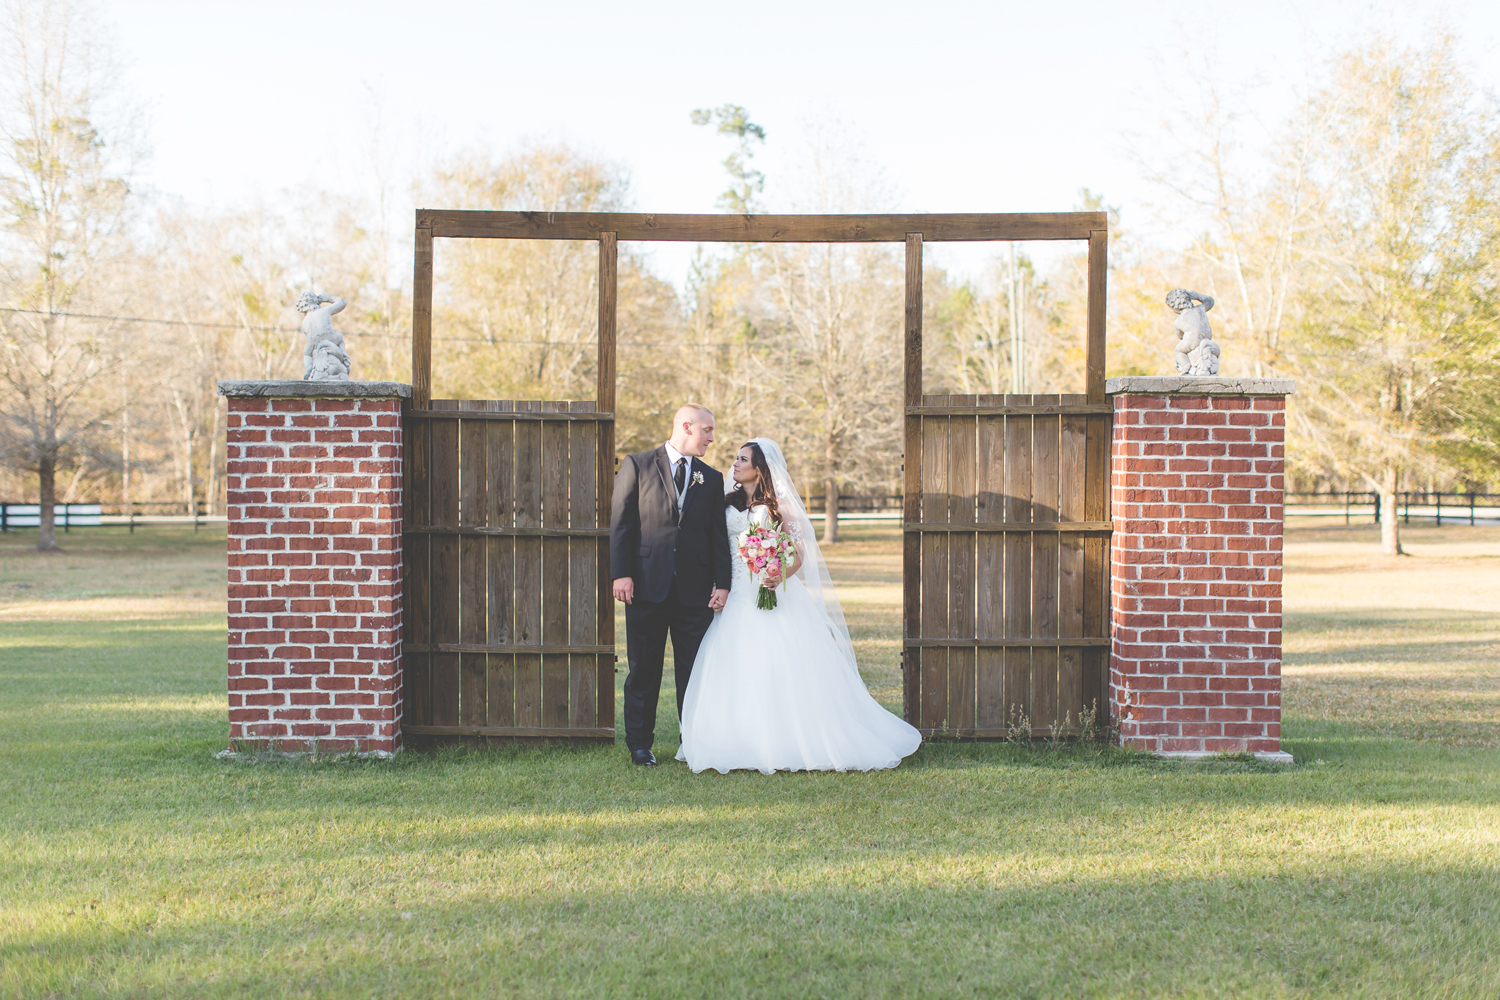 Rustic Outdoor Wedding at The White Barn